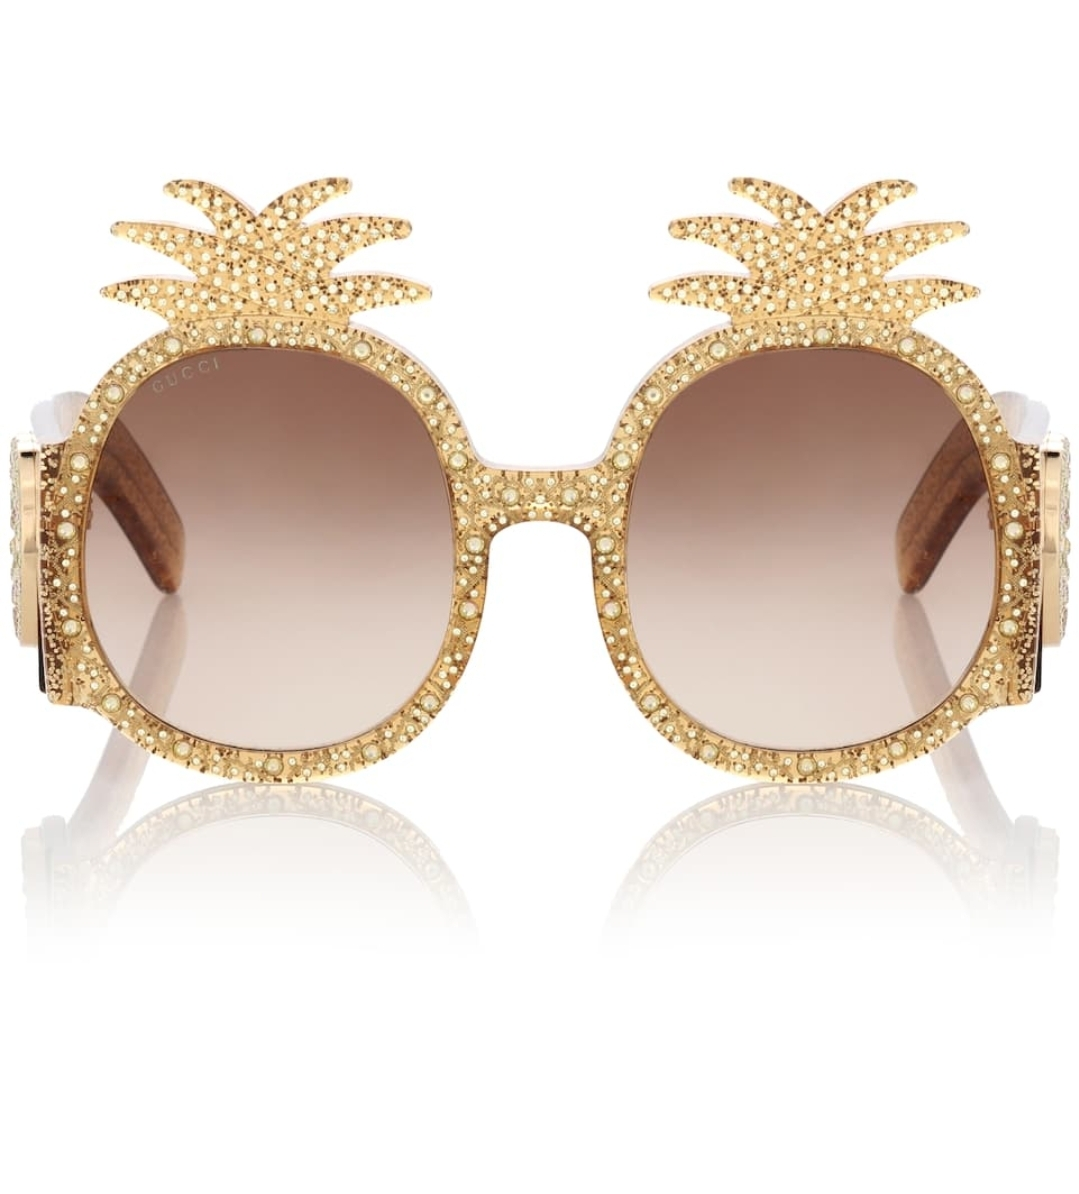 Beauty Fashion Food: Gucci 0150S Pineapple Sunglasses LIMITED EDITION